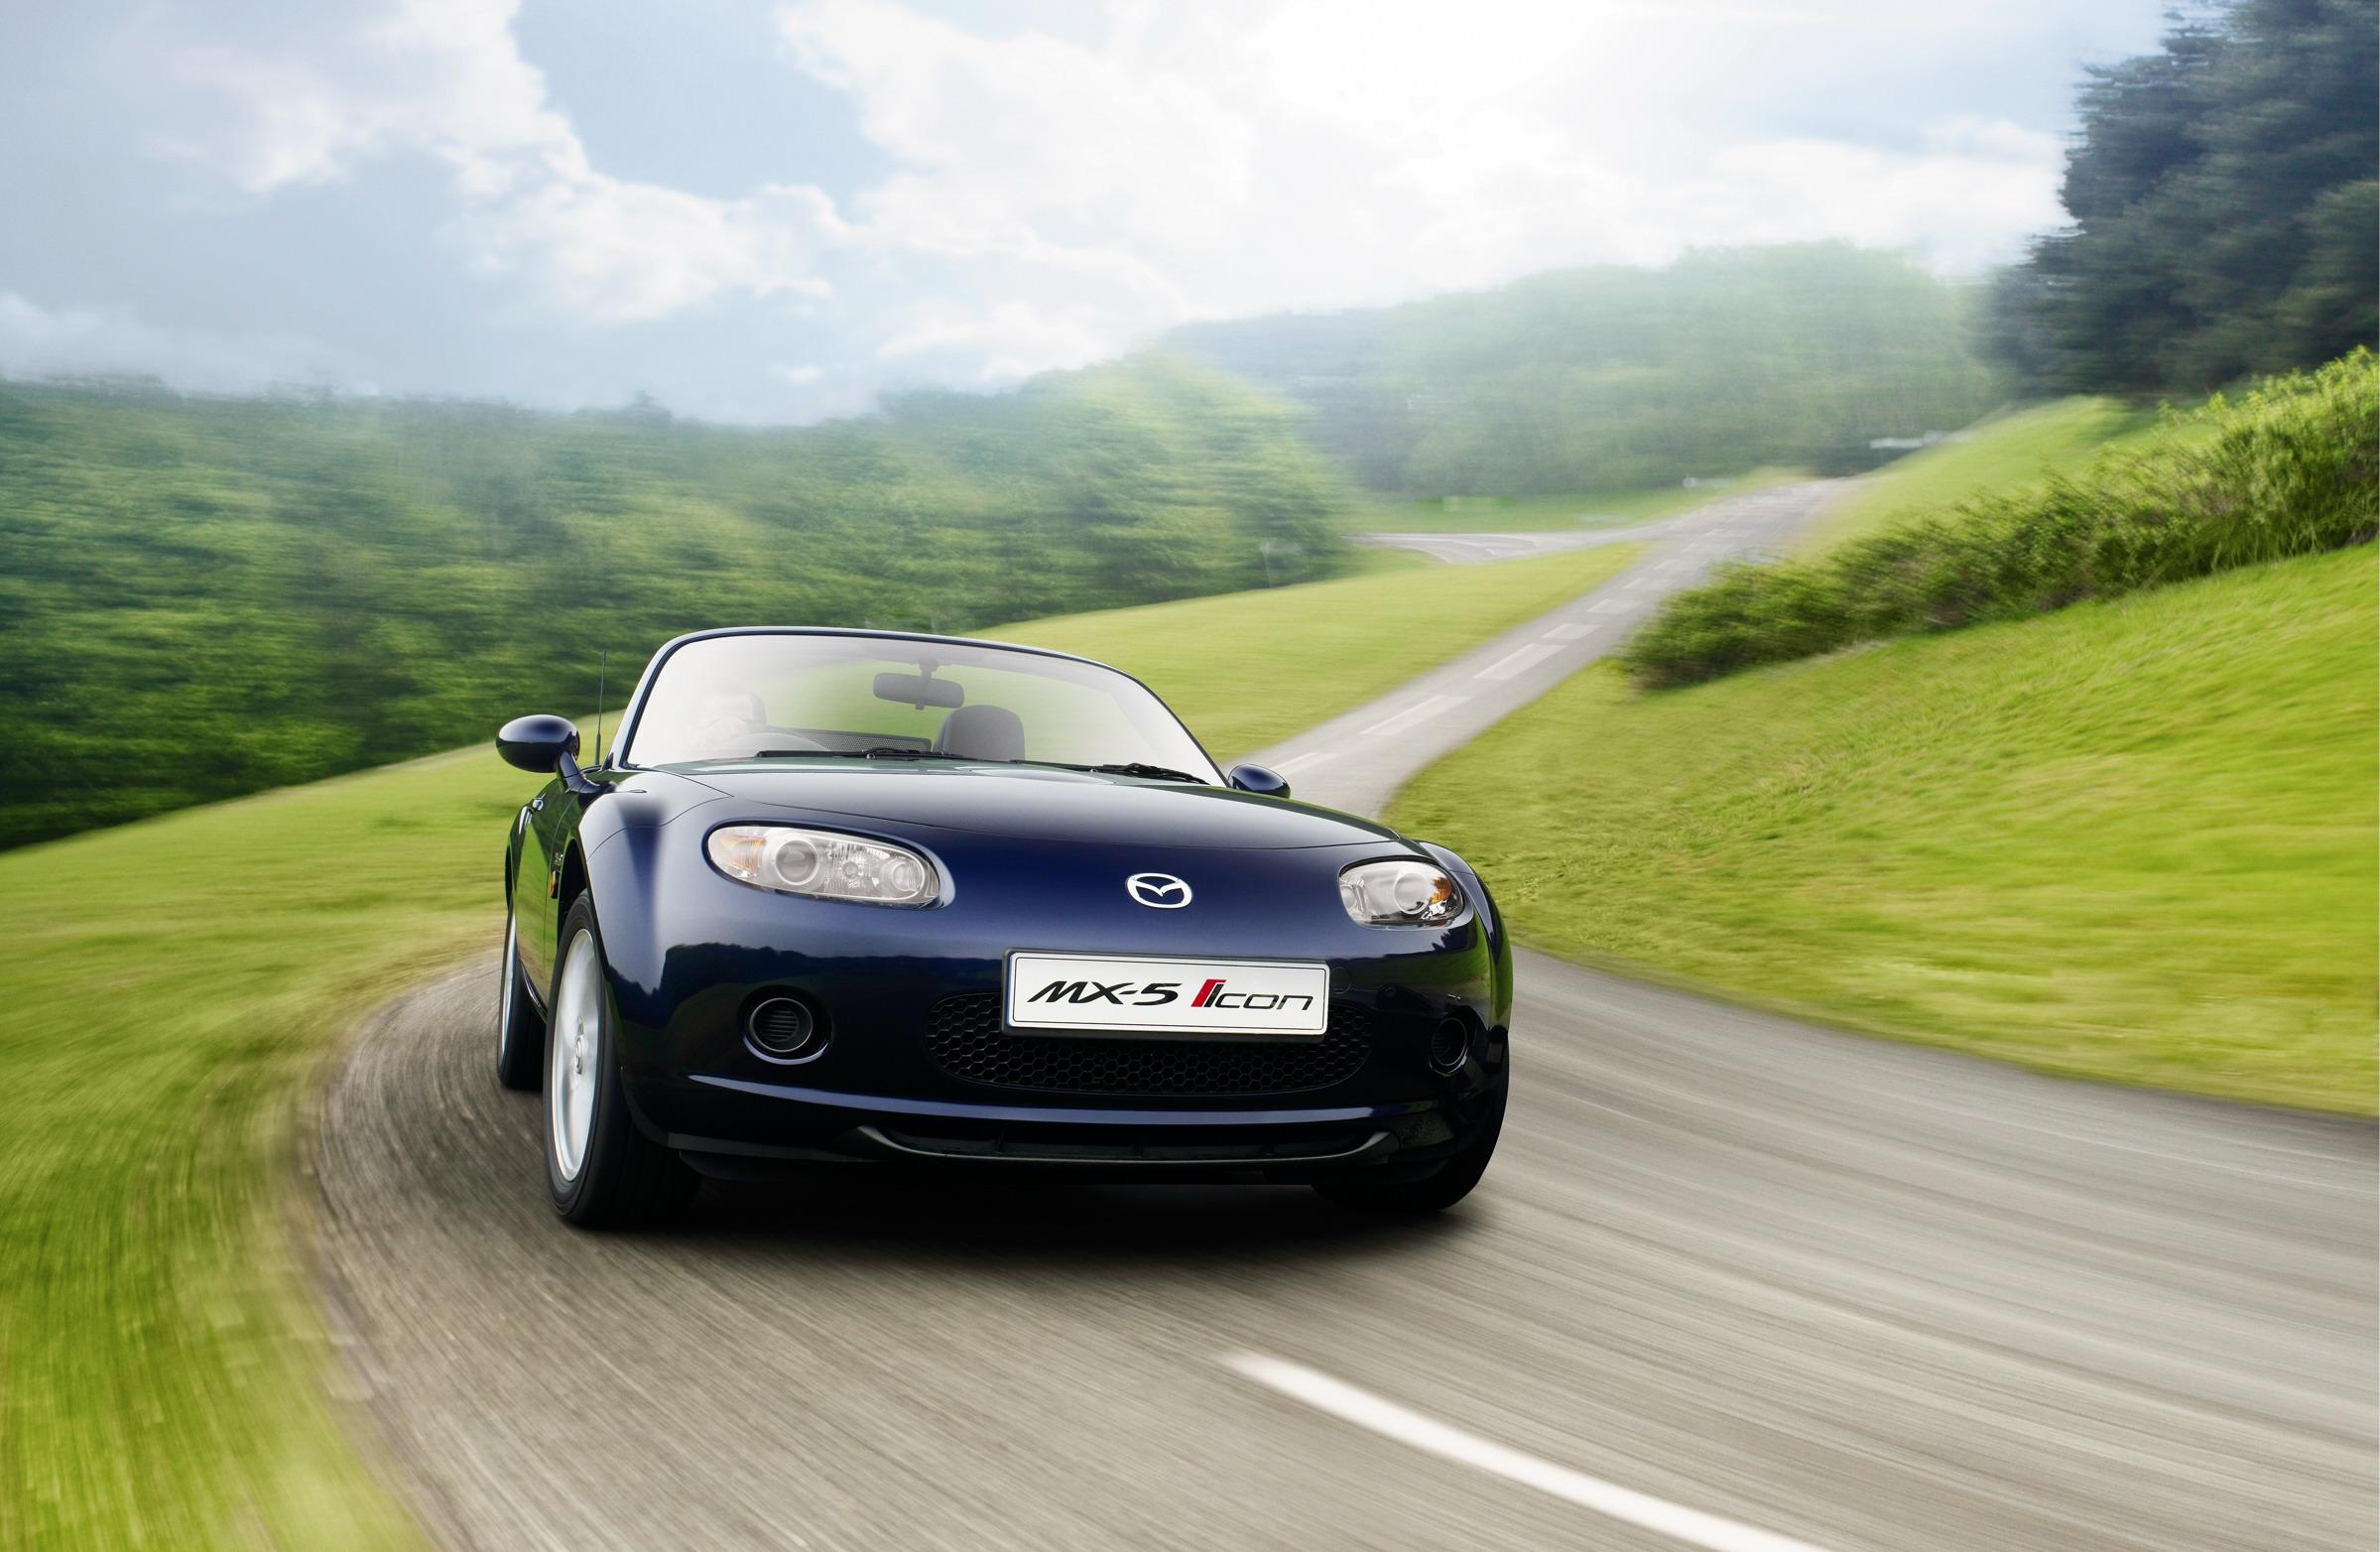 2007 Mazda MX-5 Icon Special Edition | Top Speed